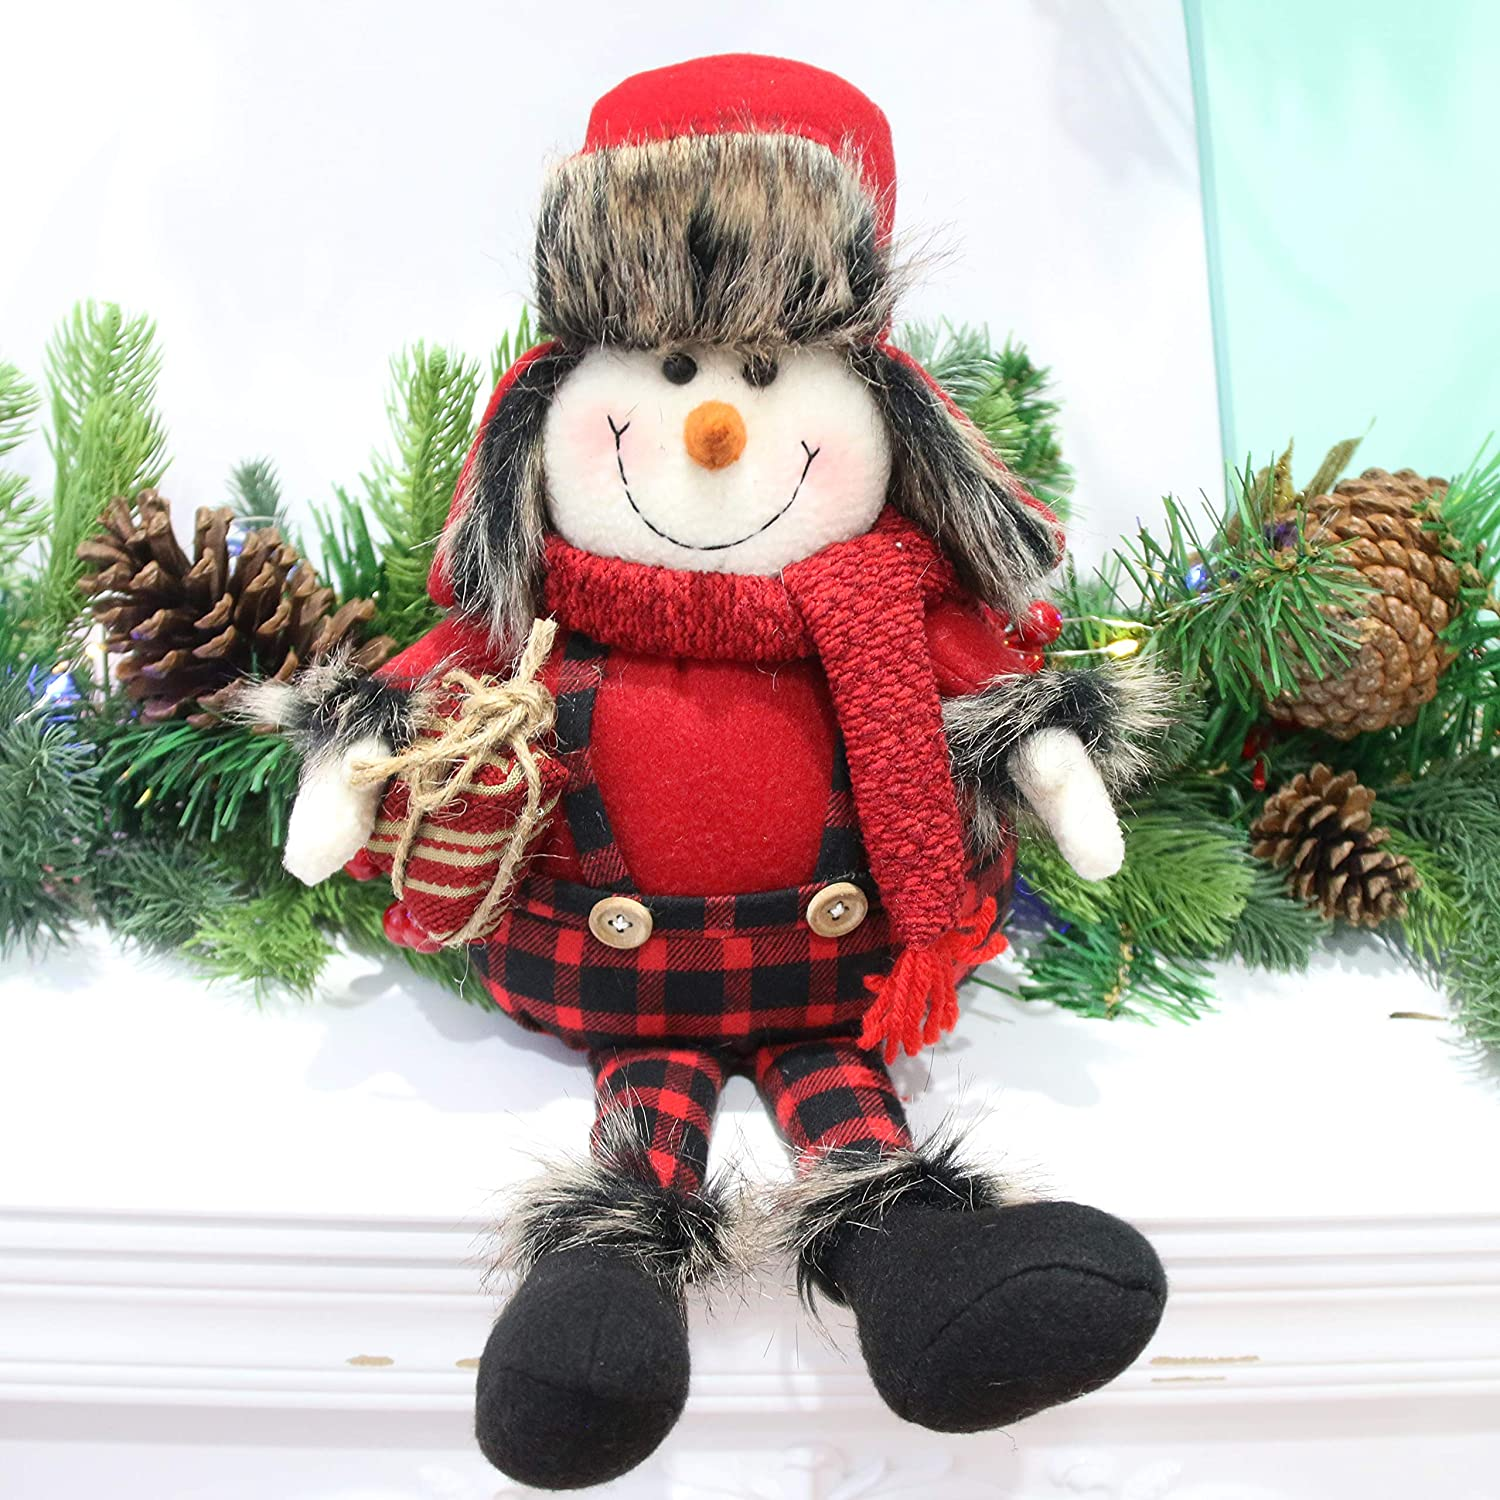 Houwsbaby Christmas Decoration Handmade Plush Snowman Figurines Hold a Gift in Overalls Home Desktop Collectible Stuffed Dolls Holiday Party Supplies Sitting Table Ornament, Red, 17'' (Snowman)